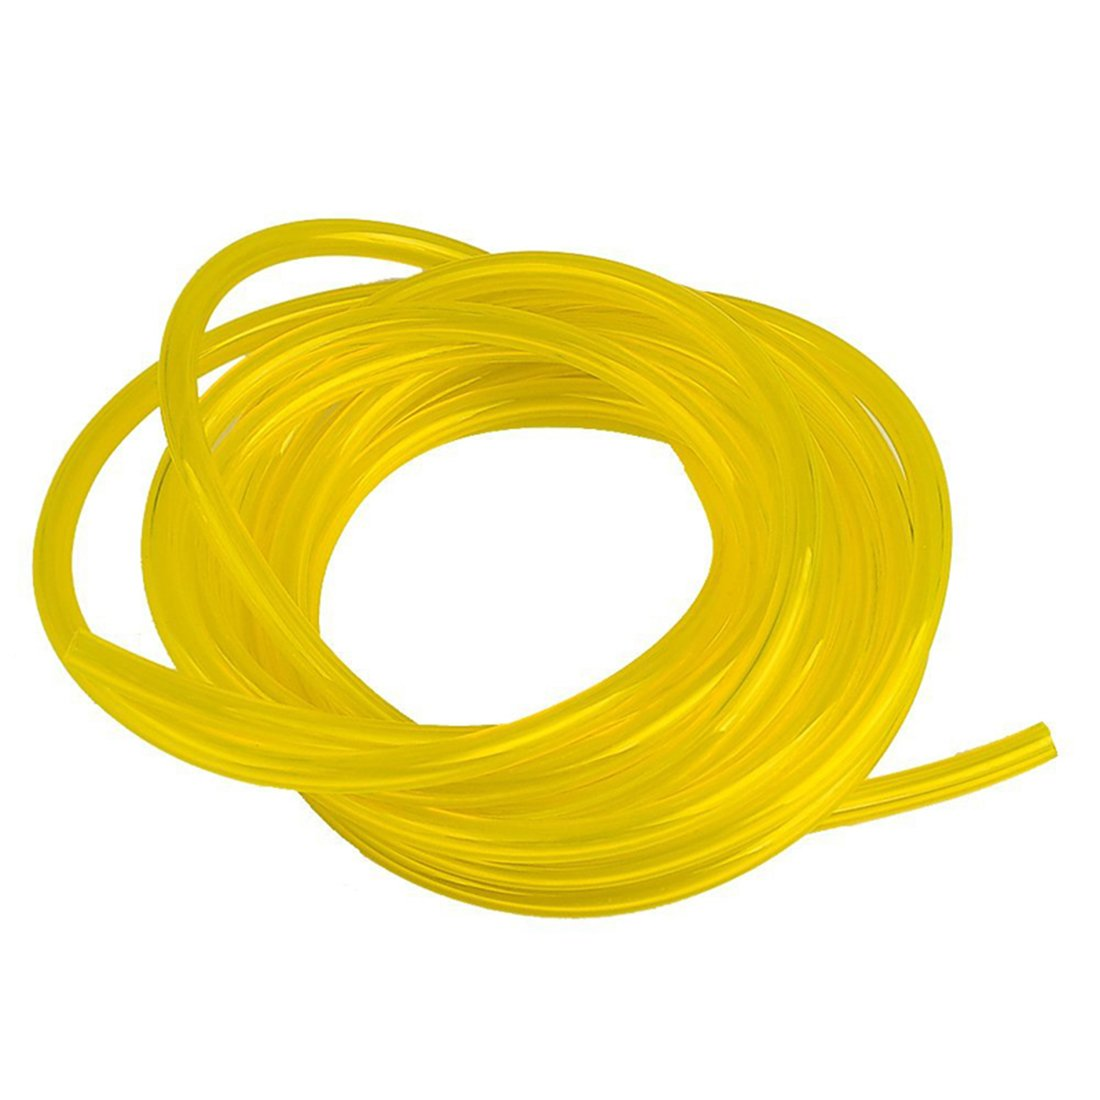 10-Feet (3 Meter) Petrol Fuel Line Hose Tubing for Common 2 Cycle Small Engine (I.D 0.08